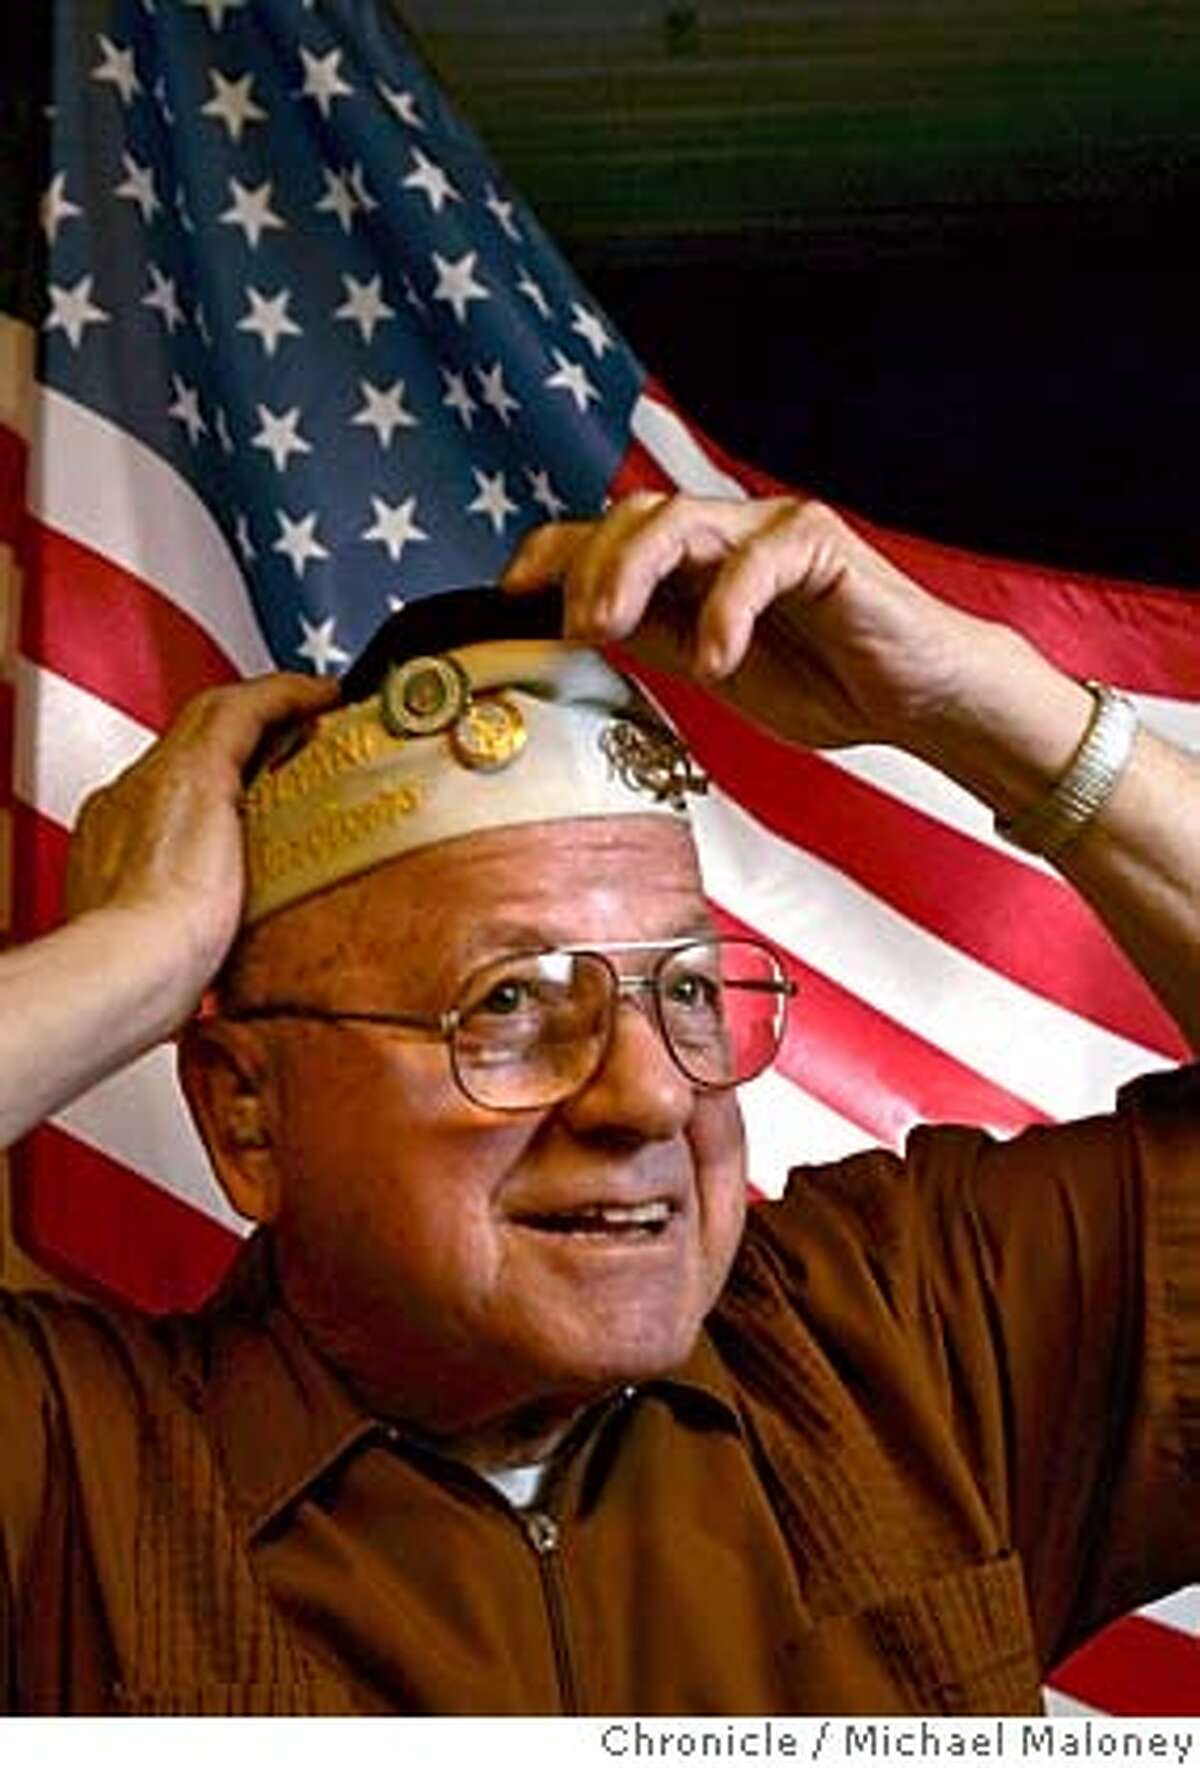 PEARL07_023_MJM.jpg Michael Mickey Ganitch adjusts his Pearl Harbor survivors cap for a portrait in his San Leandro home. Michael Mickey Ganitch of San Leandro is a commander of the disabled veterans of VFW in Oakland and a member of the Pearl Harbor Survivors group at VFW office in Oakland. He and other survivors of the Japanese attack on the U.S. naval base will take part in a ceremony marking the event on Wednesday. Ganitch was on the USS Pennsylvania when it was hit by a 500 pound bomb, killing twenty-three men. Event in San Leandro, CA Photo by Michael Maloney / The Chronicle MANDATORY CREDIT FOR PHOTOG AND SF CHRONICLE/ -MAGS OUT